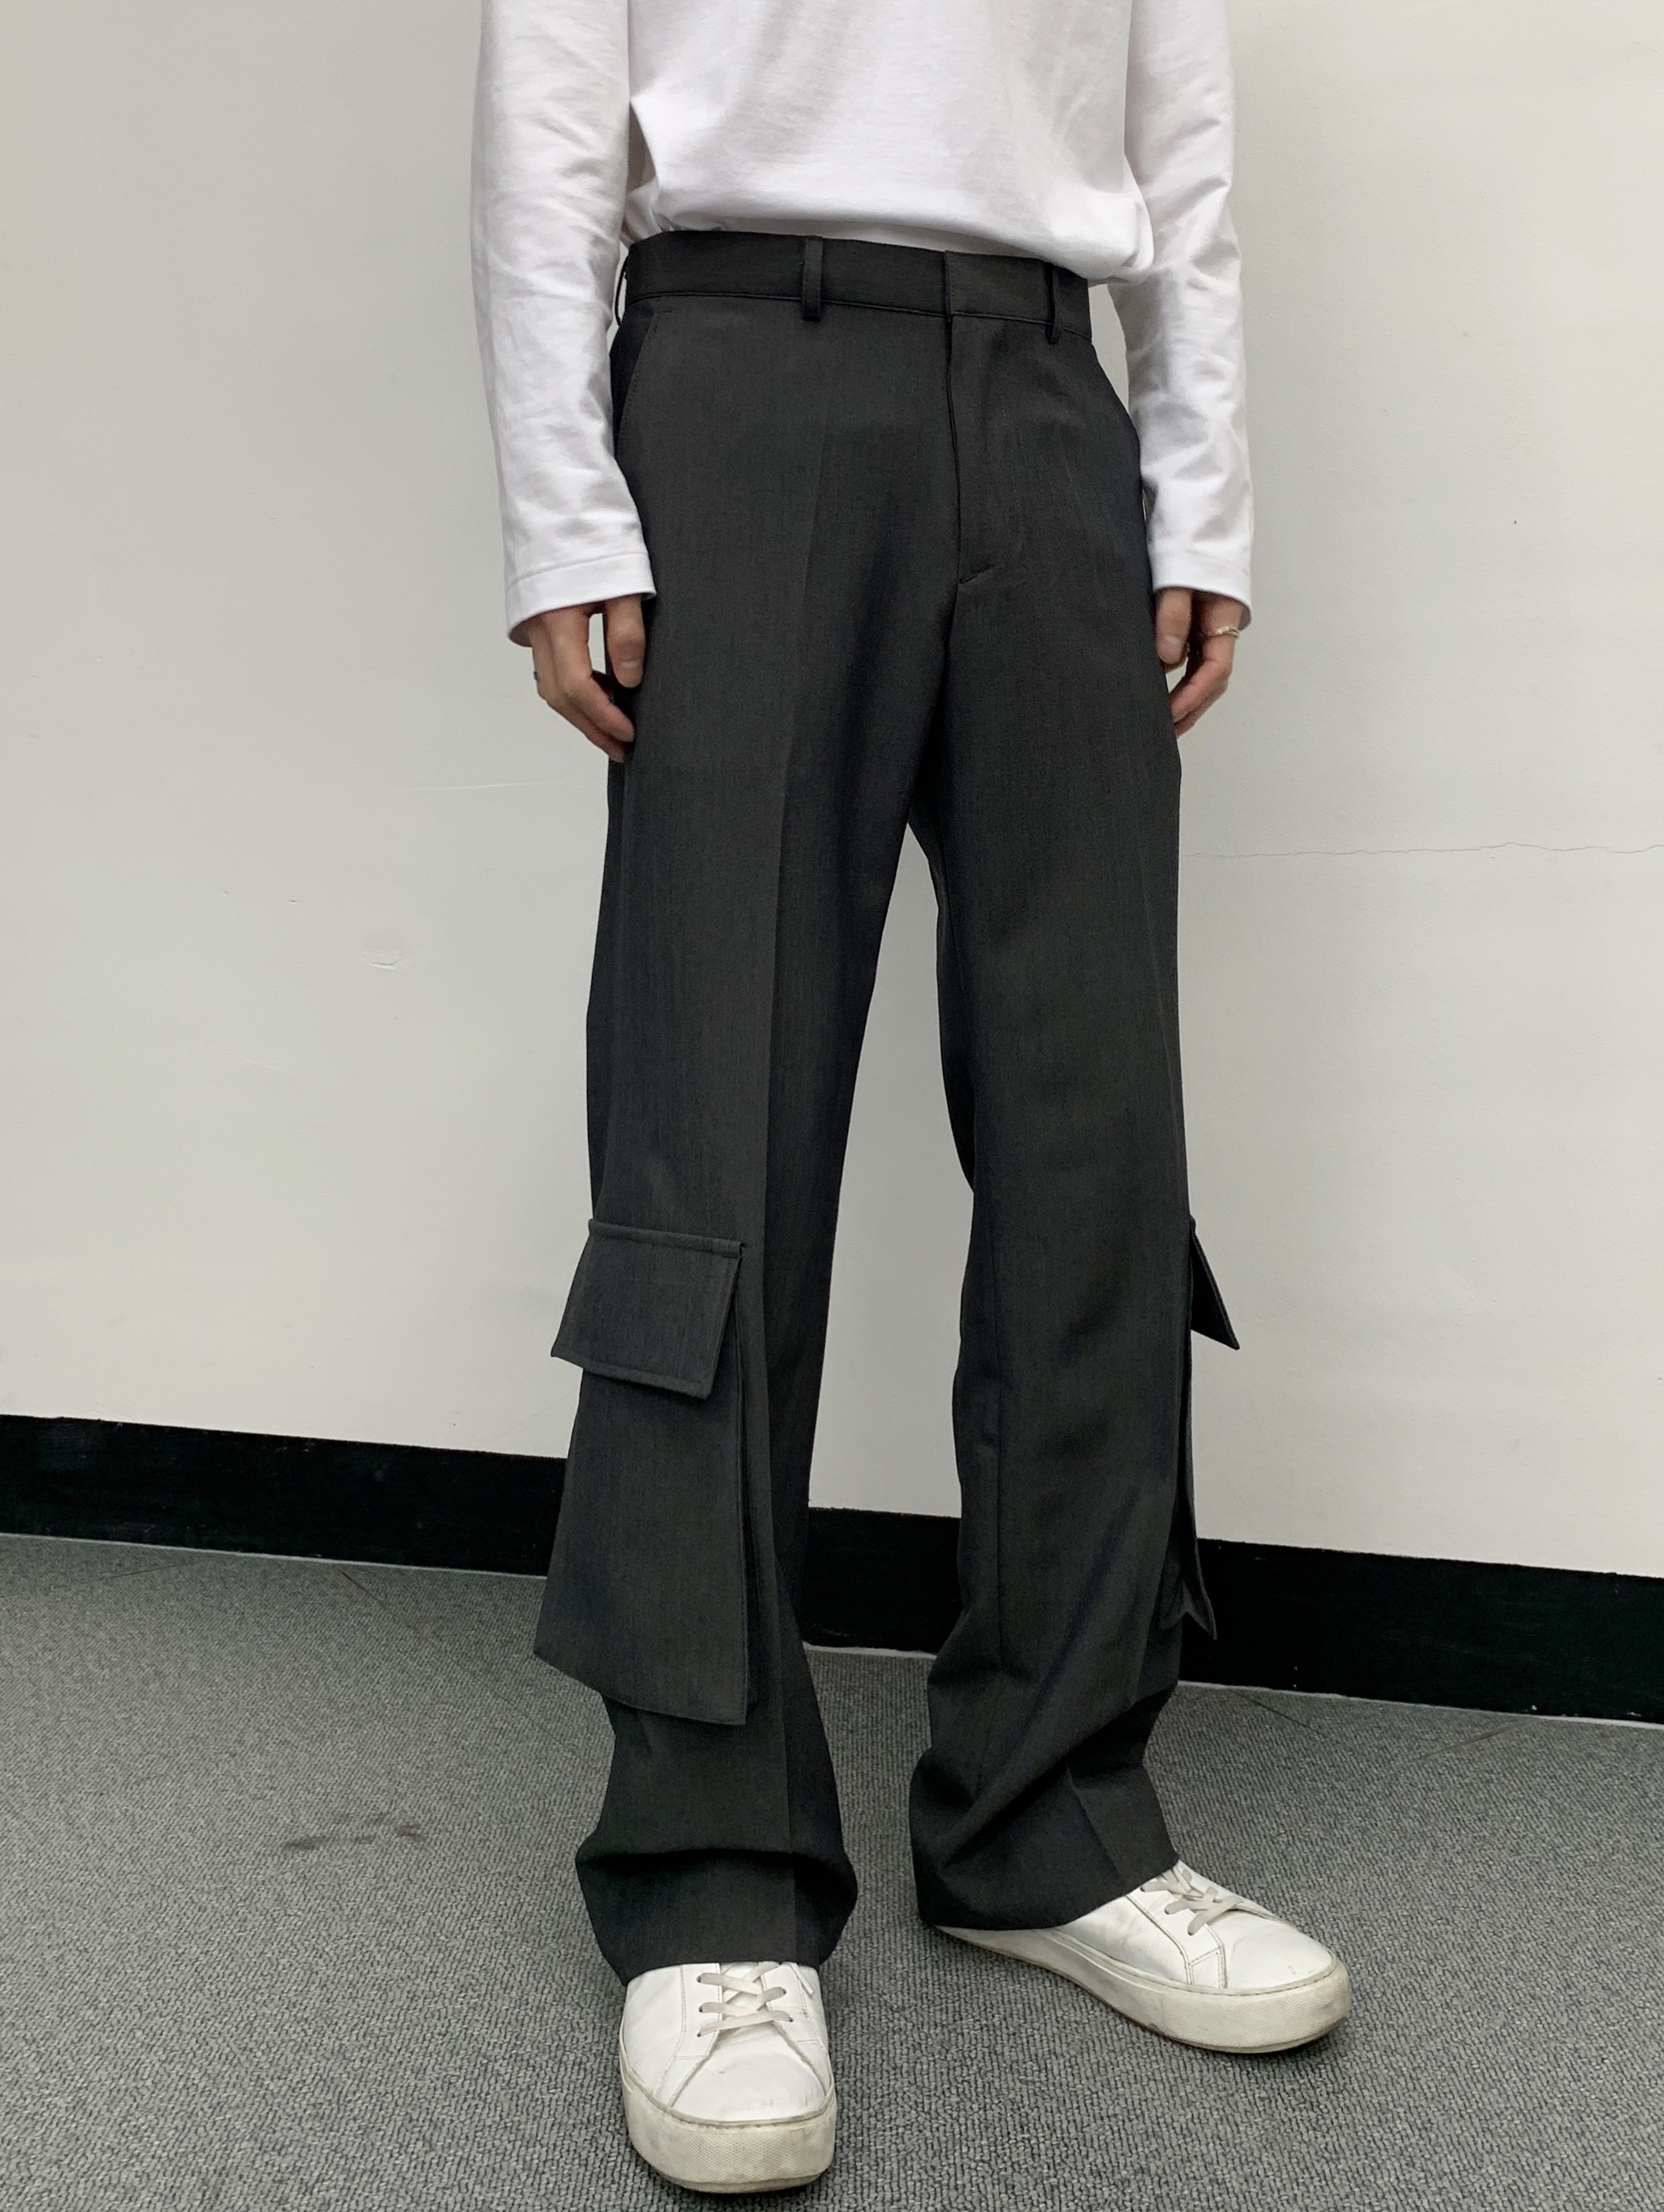 Lk below pocket slacks